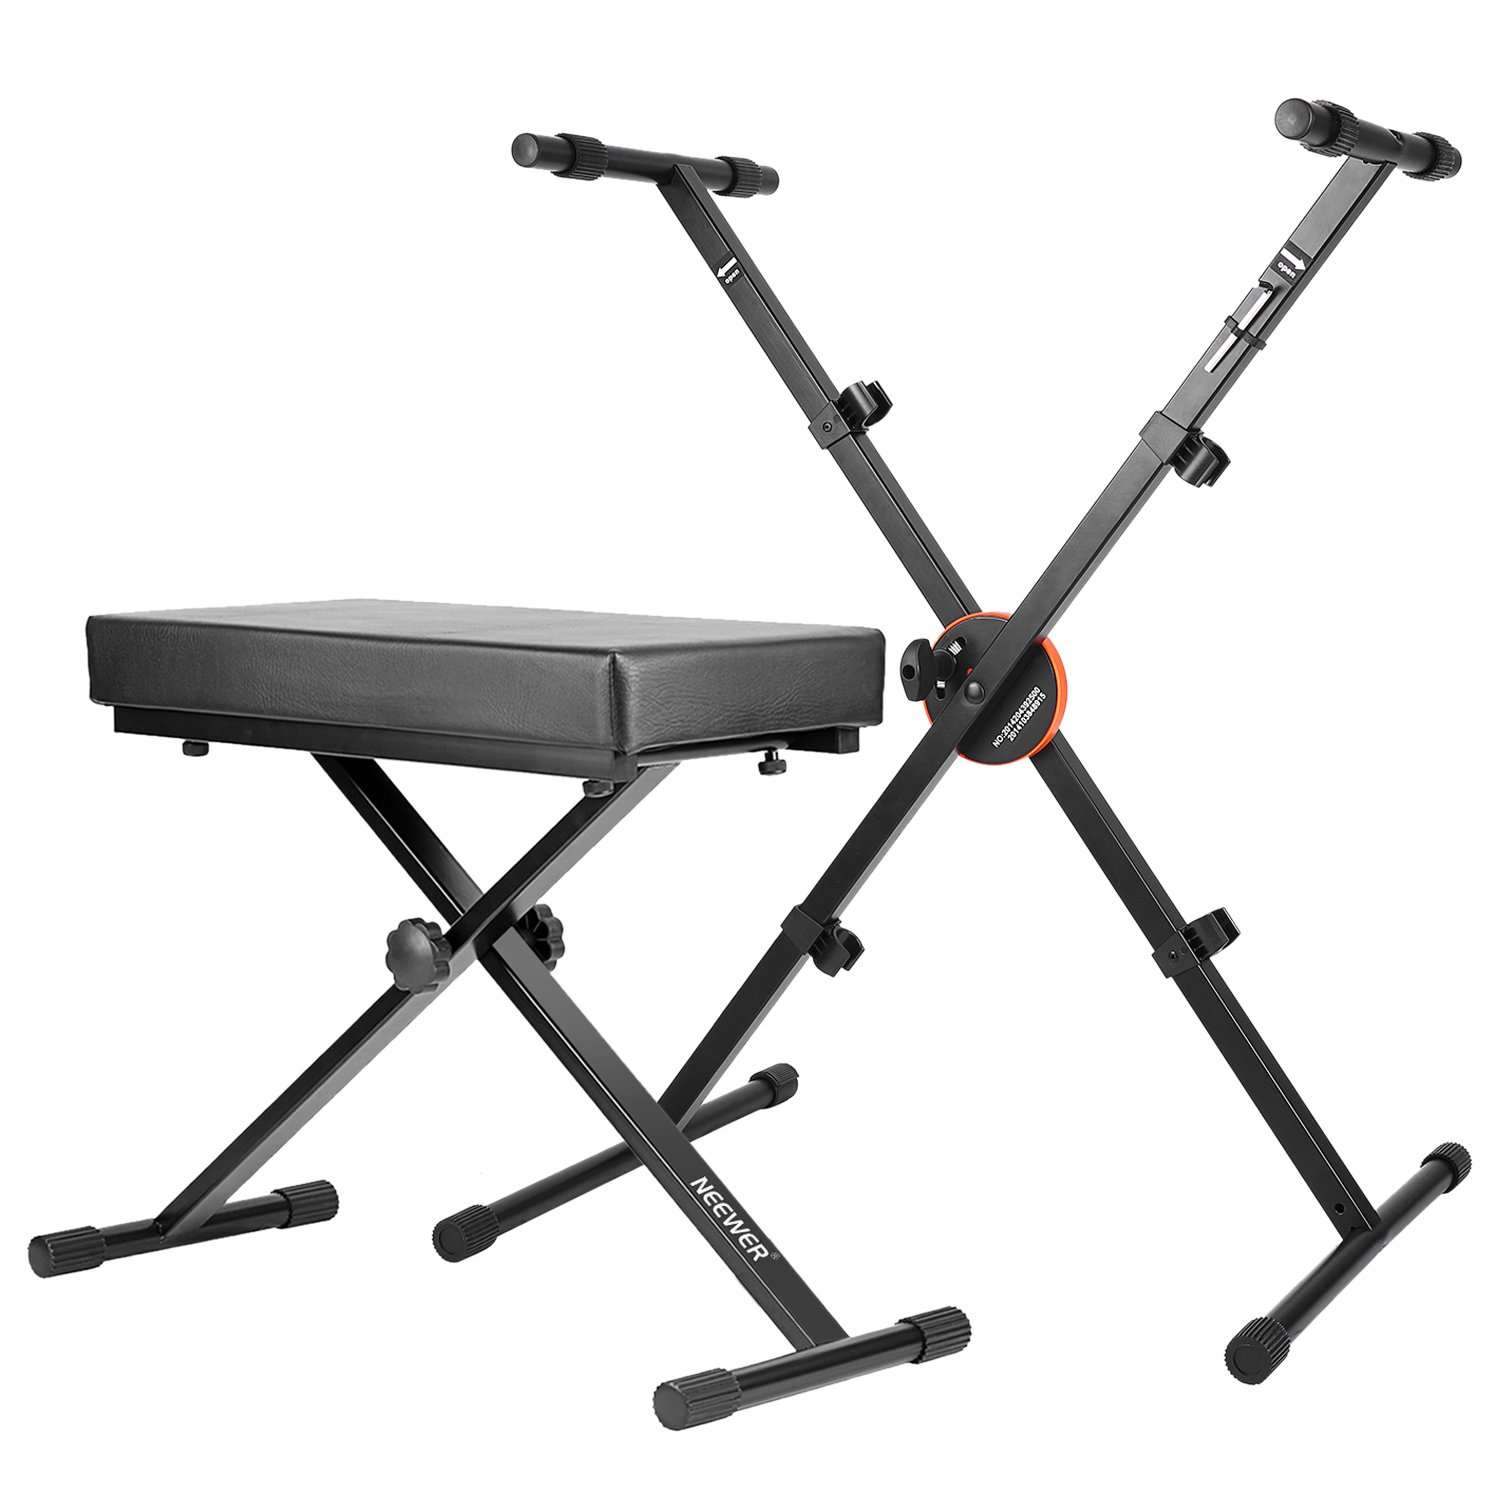 Neewer X-style Keyboard Bench and Stand Kit - Detachable Adjustable Padded Keyboard Bench and Foldable Keyboard Stand with Height Control Lock and Non-slip Rubber Caps, Solid Metal (Black)